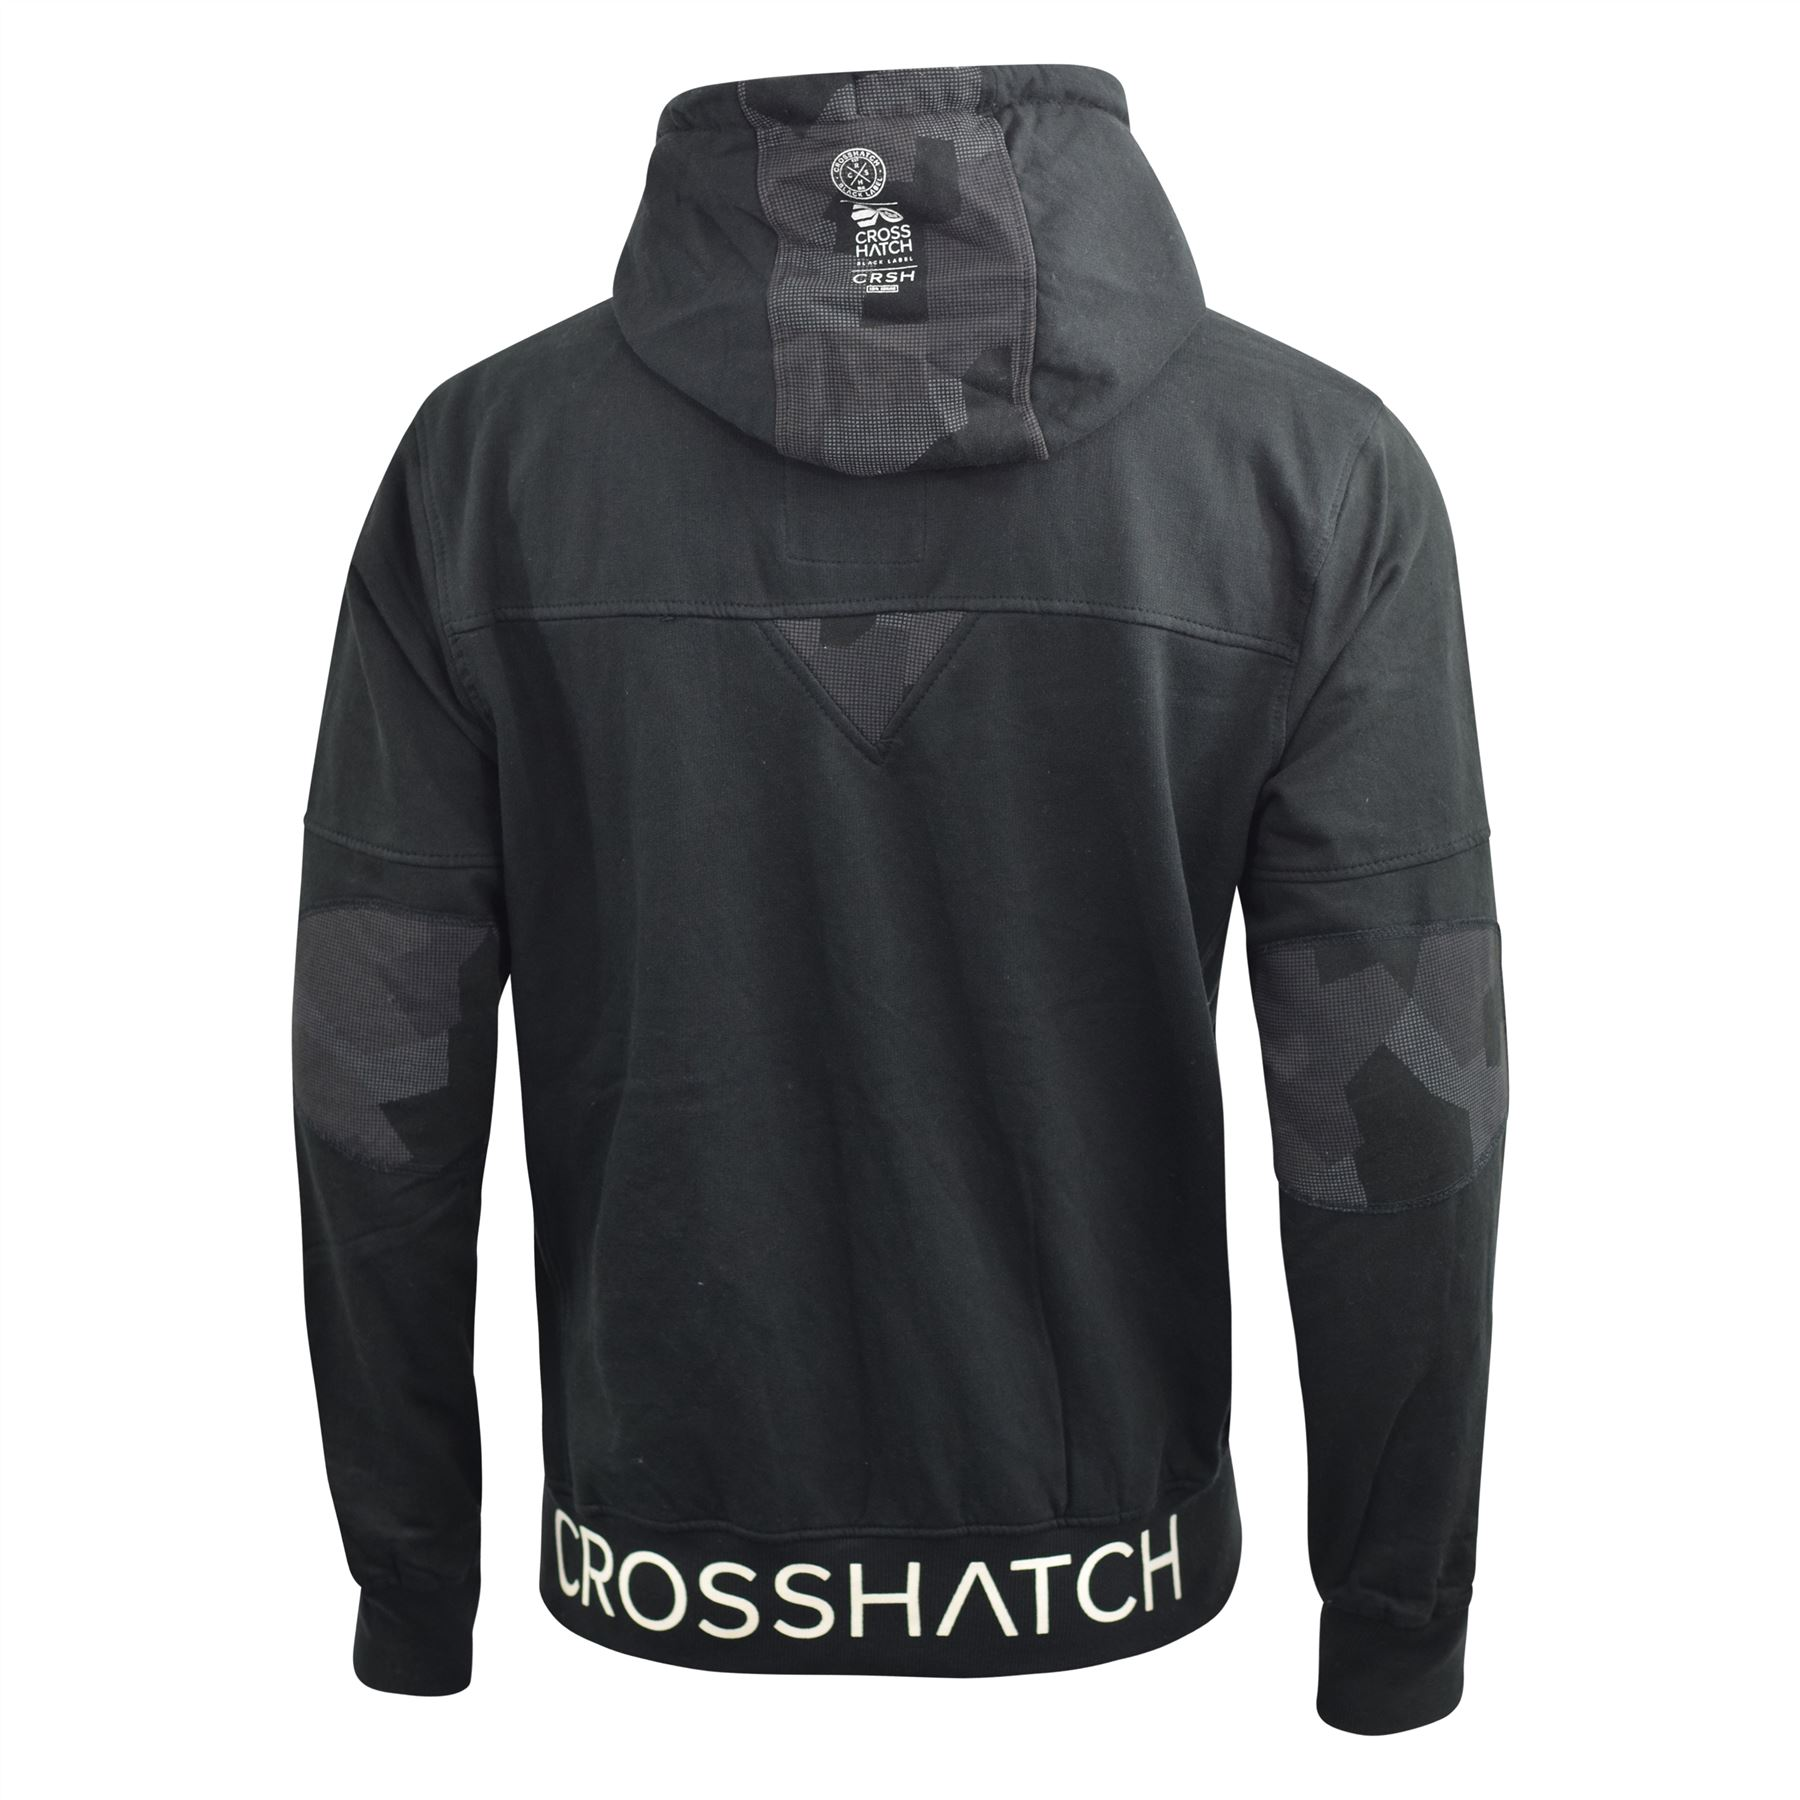 Mens-Hoodie-Crosshatch-Full-Zip-Sweatshirt-Hooded-Jumper-Top-Pullover-Radzim thumbnail 7